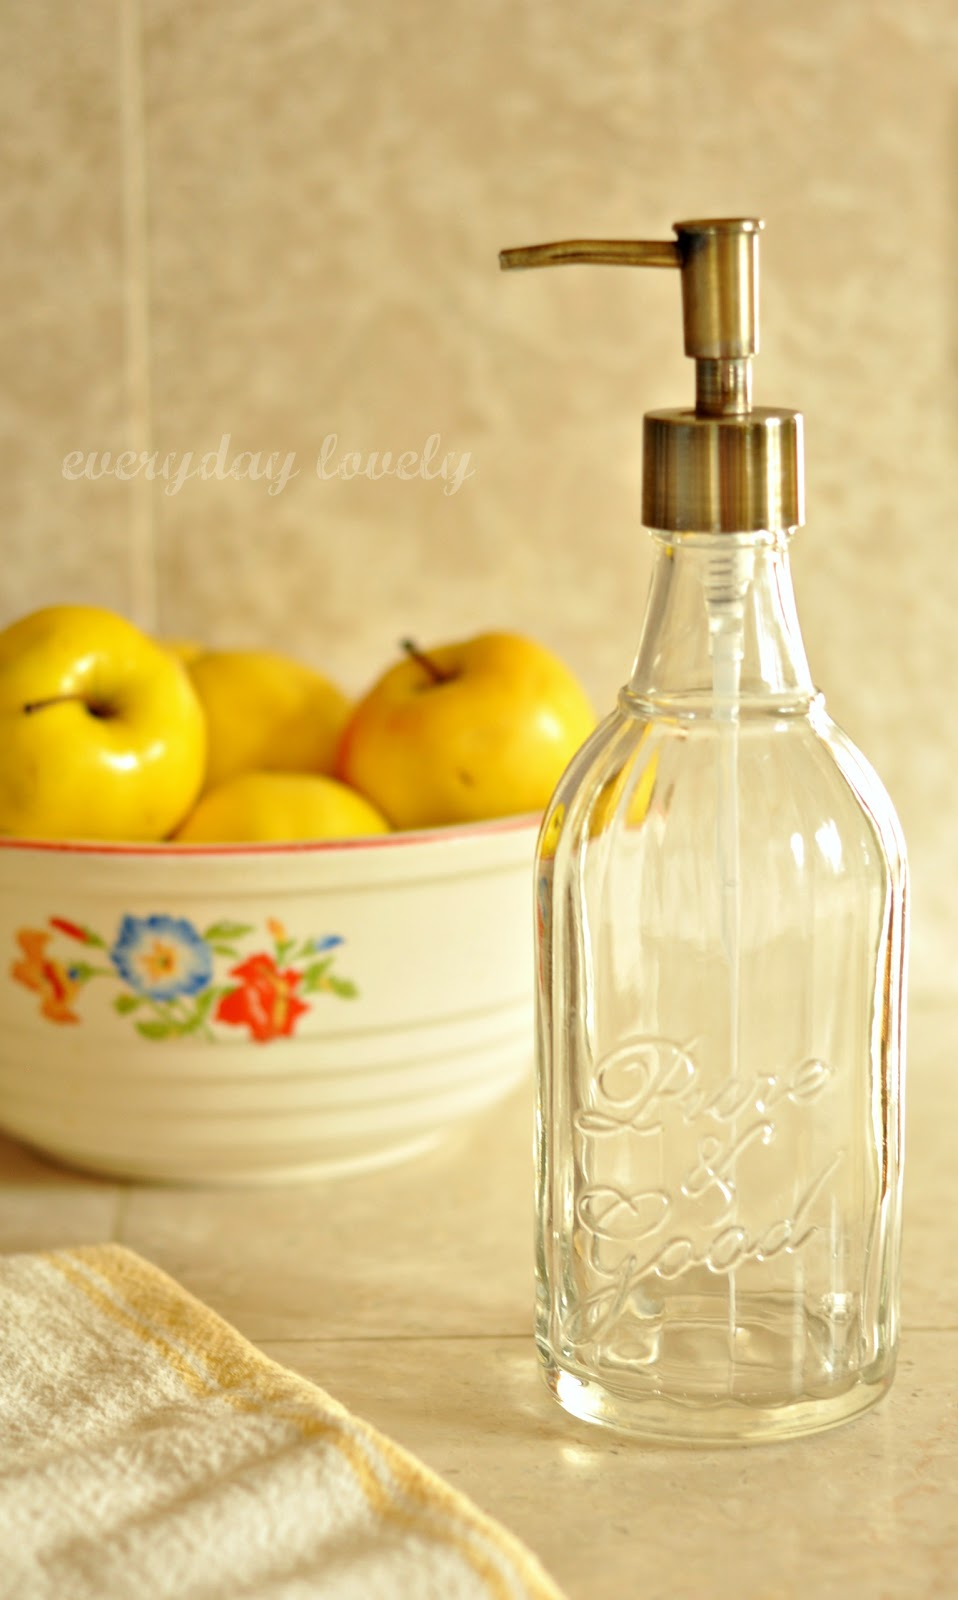 Fixer upper kitchen soap dispenser - Anyway I Just Finally Finished The Original Hand Soap That Came In It An Exciting Event Because It S Time To Fill It With This Lovely Dish Soap From